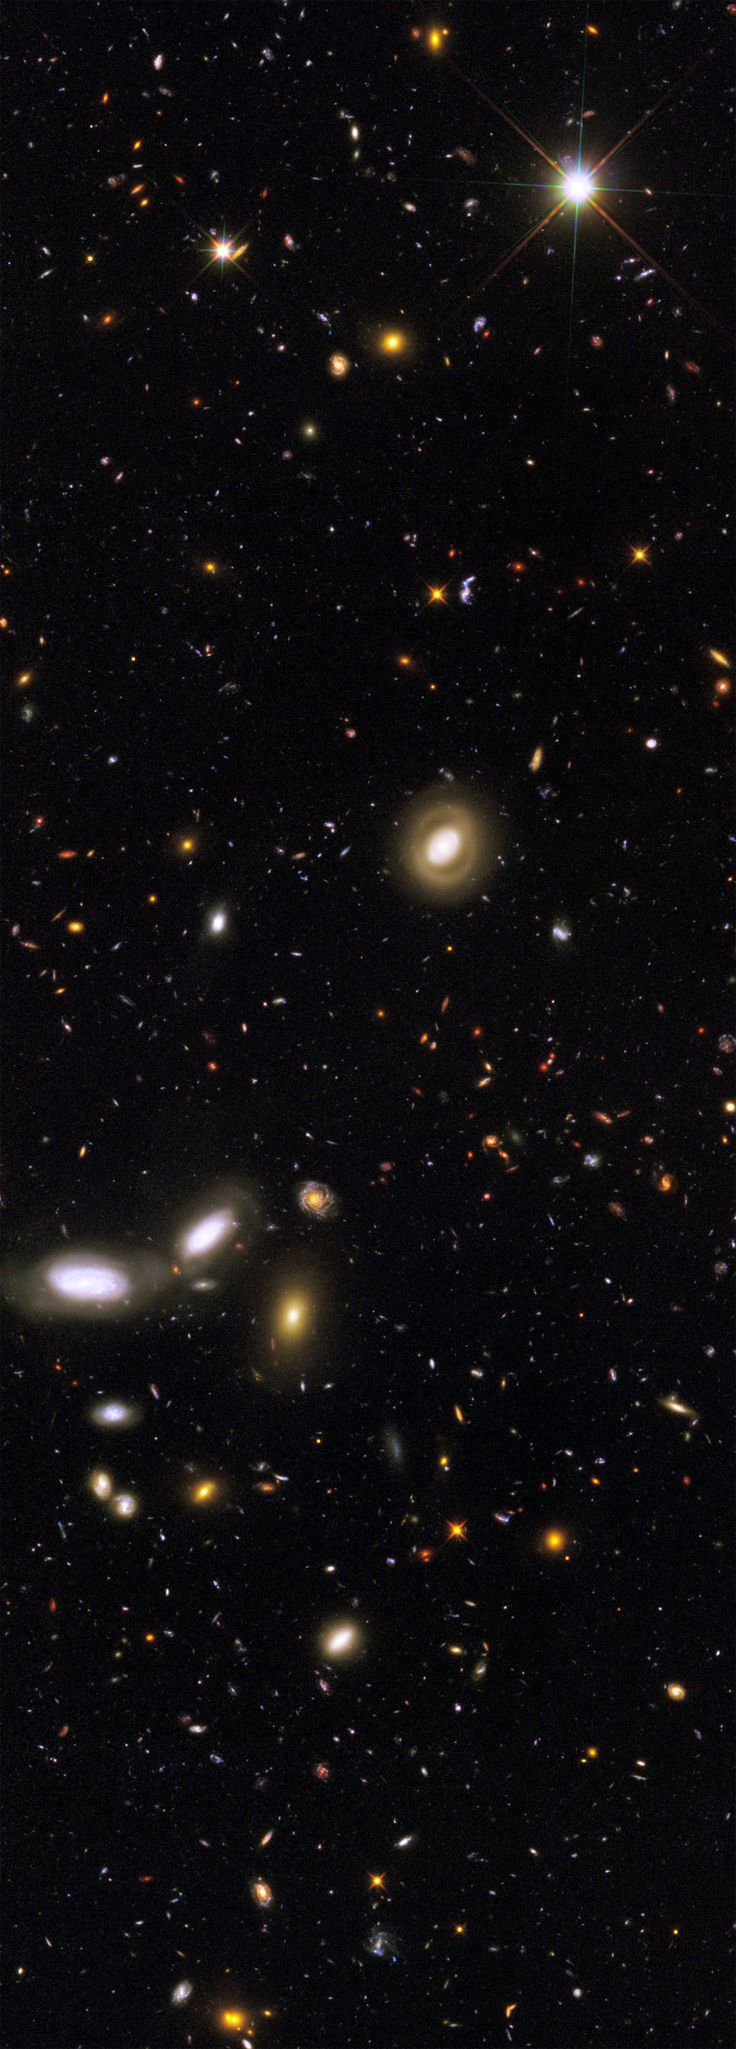 """""""This Hubble image is one of several, including the Ultra Deep Field, which peer into seemingly empty space, leaving the camera shutter open for hours, and reveal that billions of galaxies made up of billions of stars fill our skies in every direction as far as we can possibly see, separated by almost unimaginable distance and time, yet still reachable, visible as an image of their long-ago selves."""""""